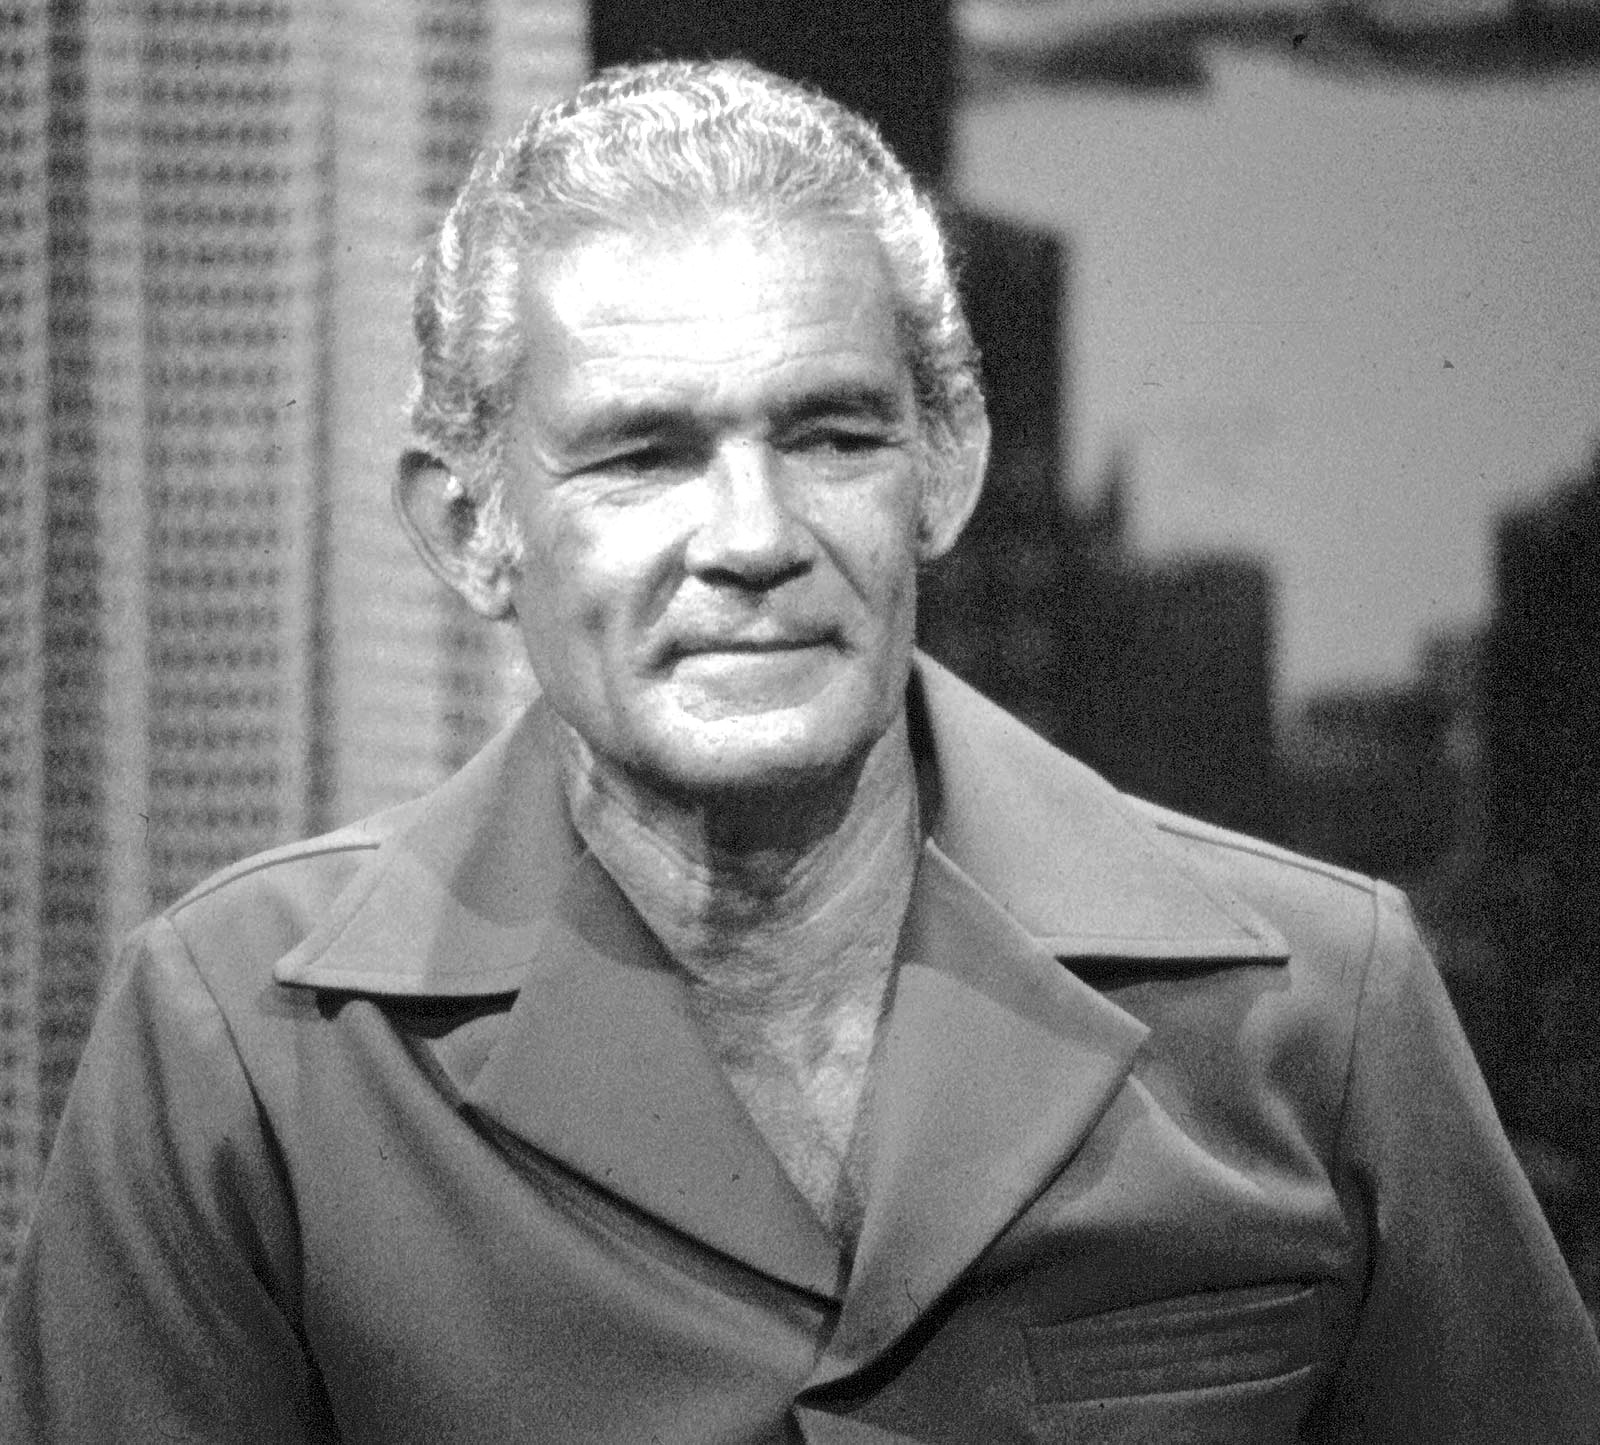 Norman Manley, Prime Minister of Jamaica